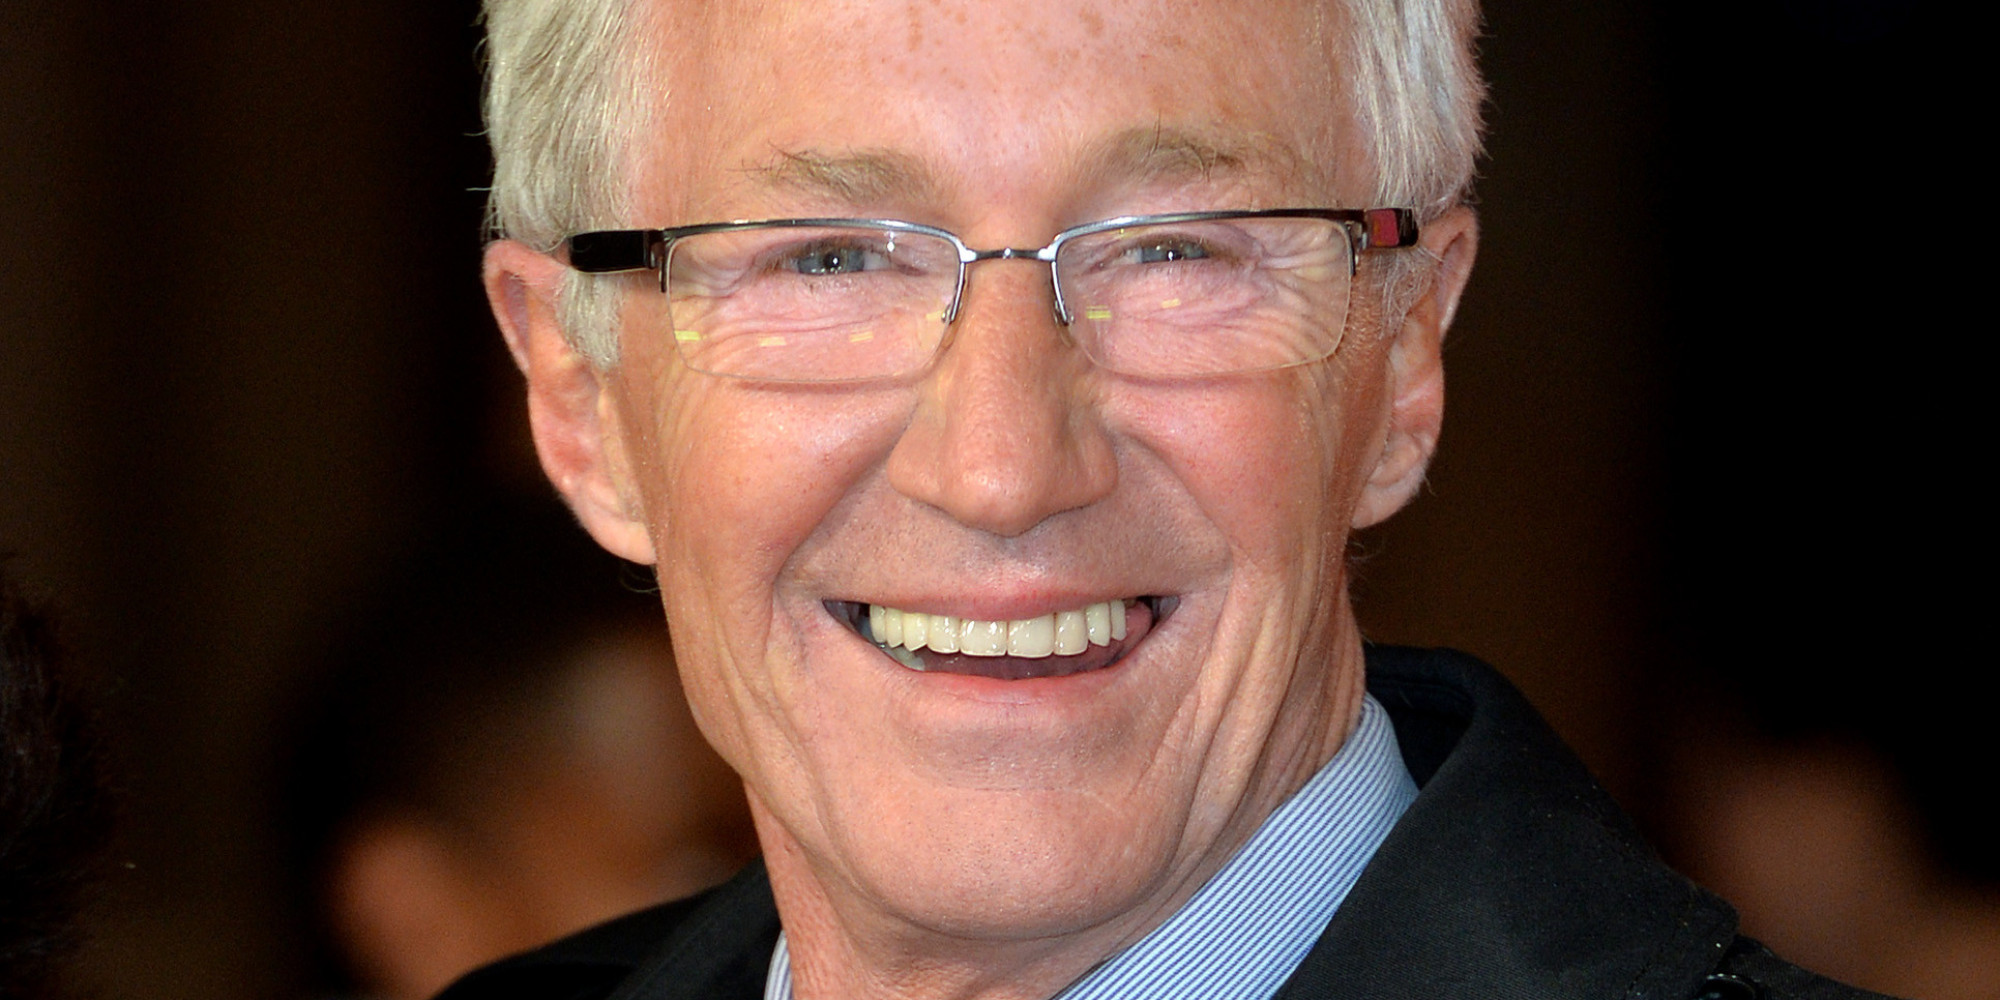 Paul O'Grady Reveals He Couldn't Do 'Strictly Come Dancing' As He Would 'Smash Craig Revel Horwood's Face In'